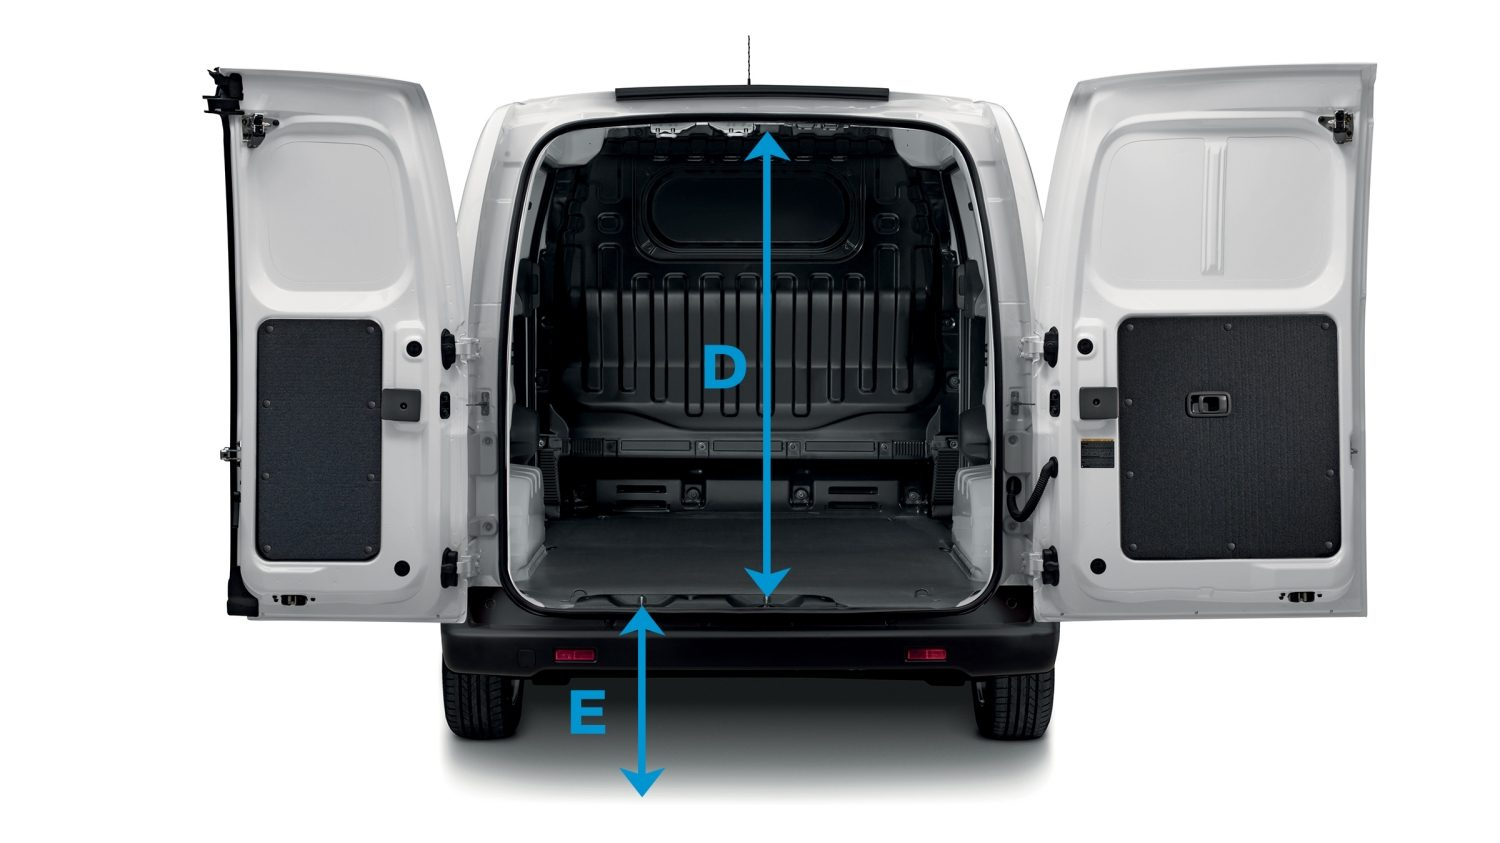 New Nissan e-NV200 VAN rear view with open rear doors and dimensions